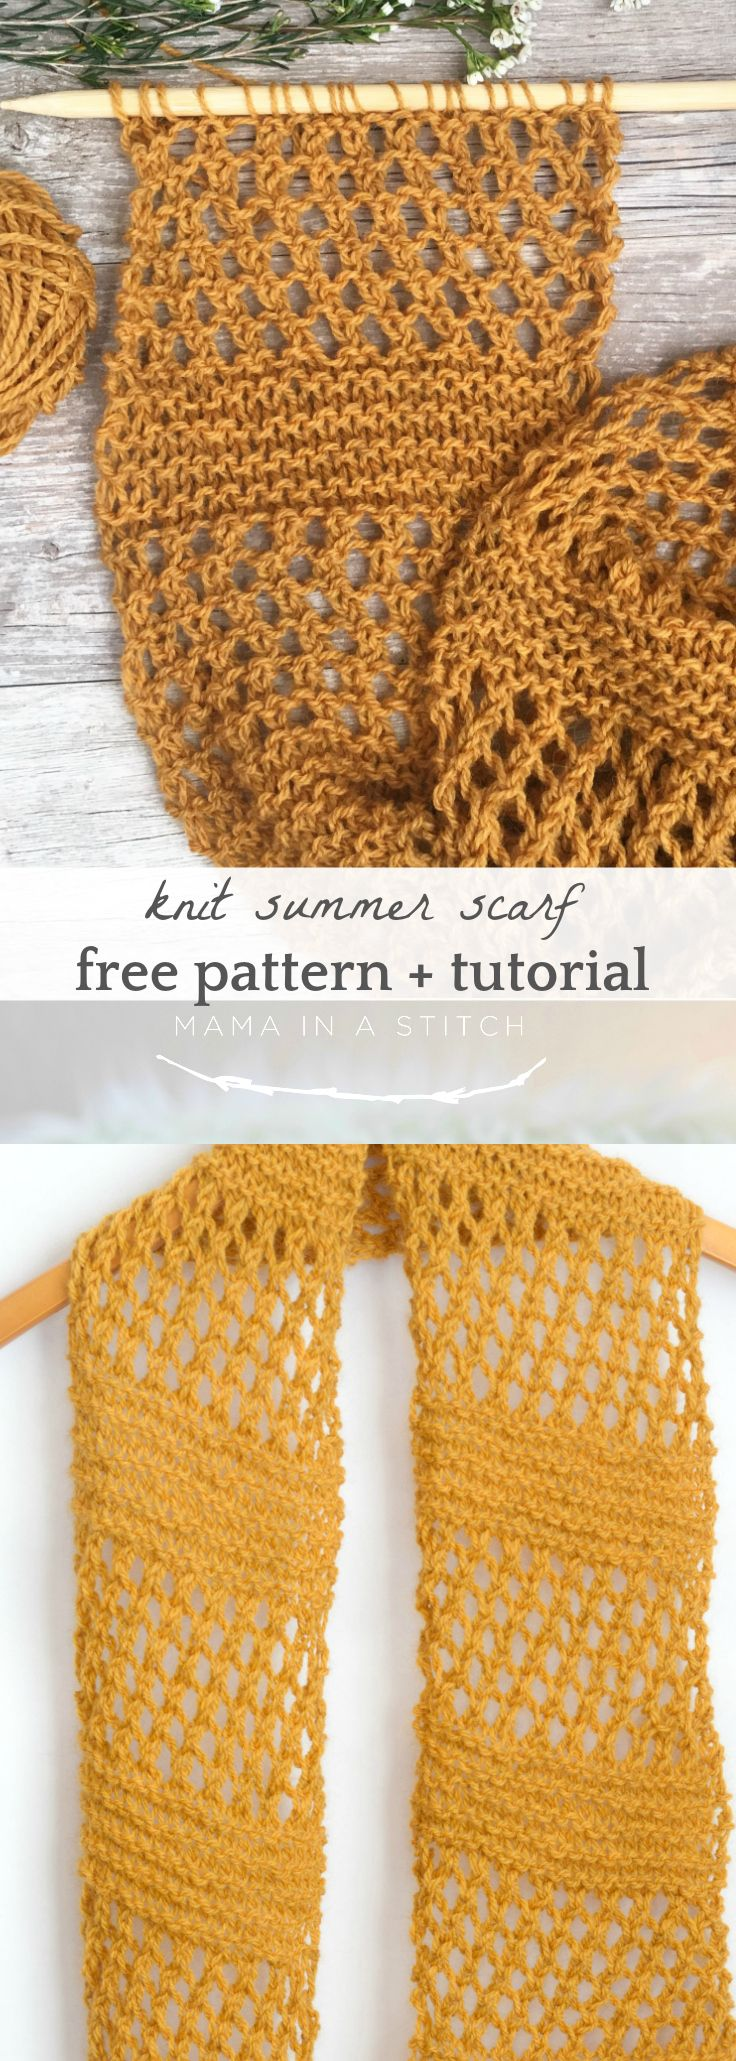 Shawl Knitting Patterns - Make A Summer Wrap With This